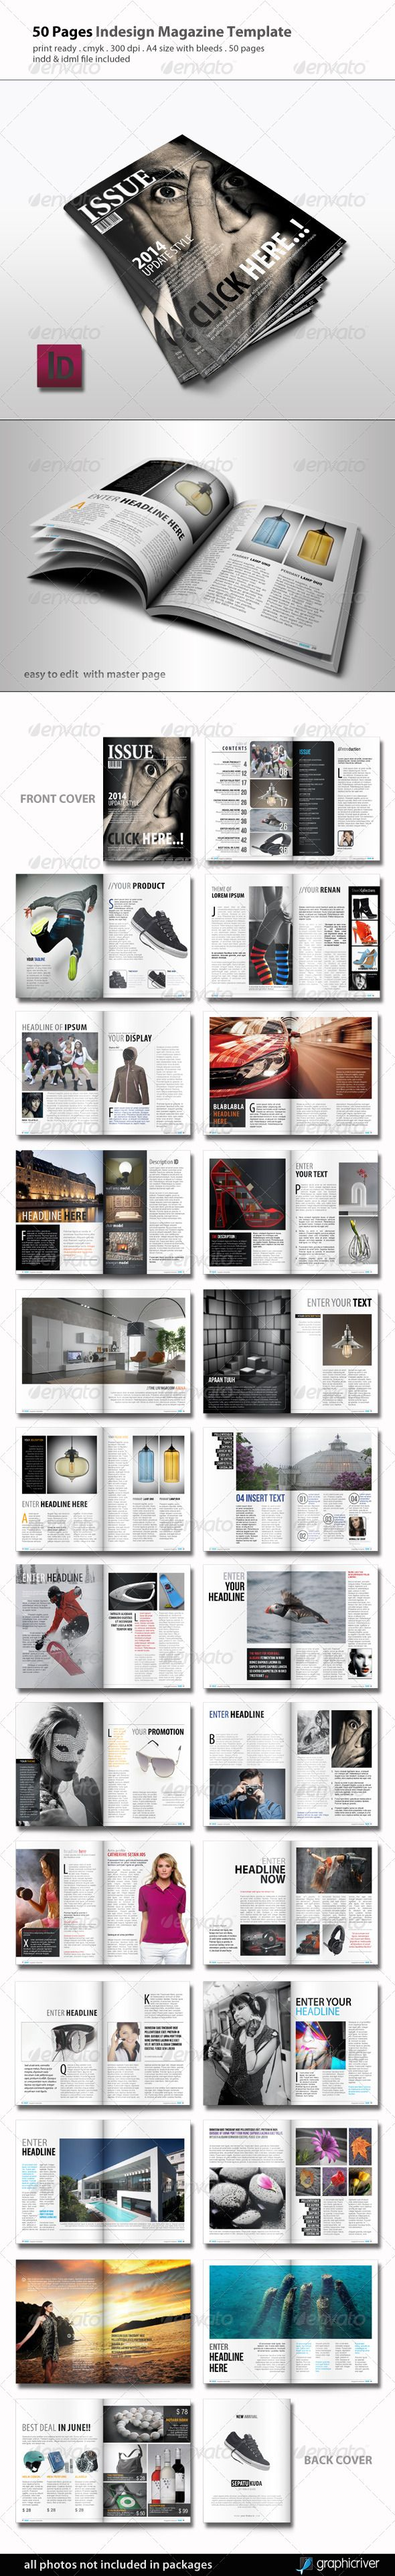 Magazine Template — InDesign INDD #cmyk #indd • Available here → https://graphicriver.net/item/magazine-template/5123738?ref=pxcr